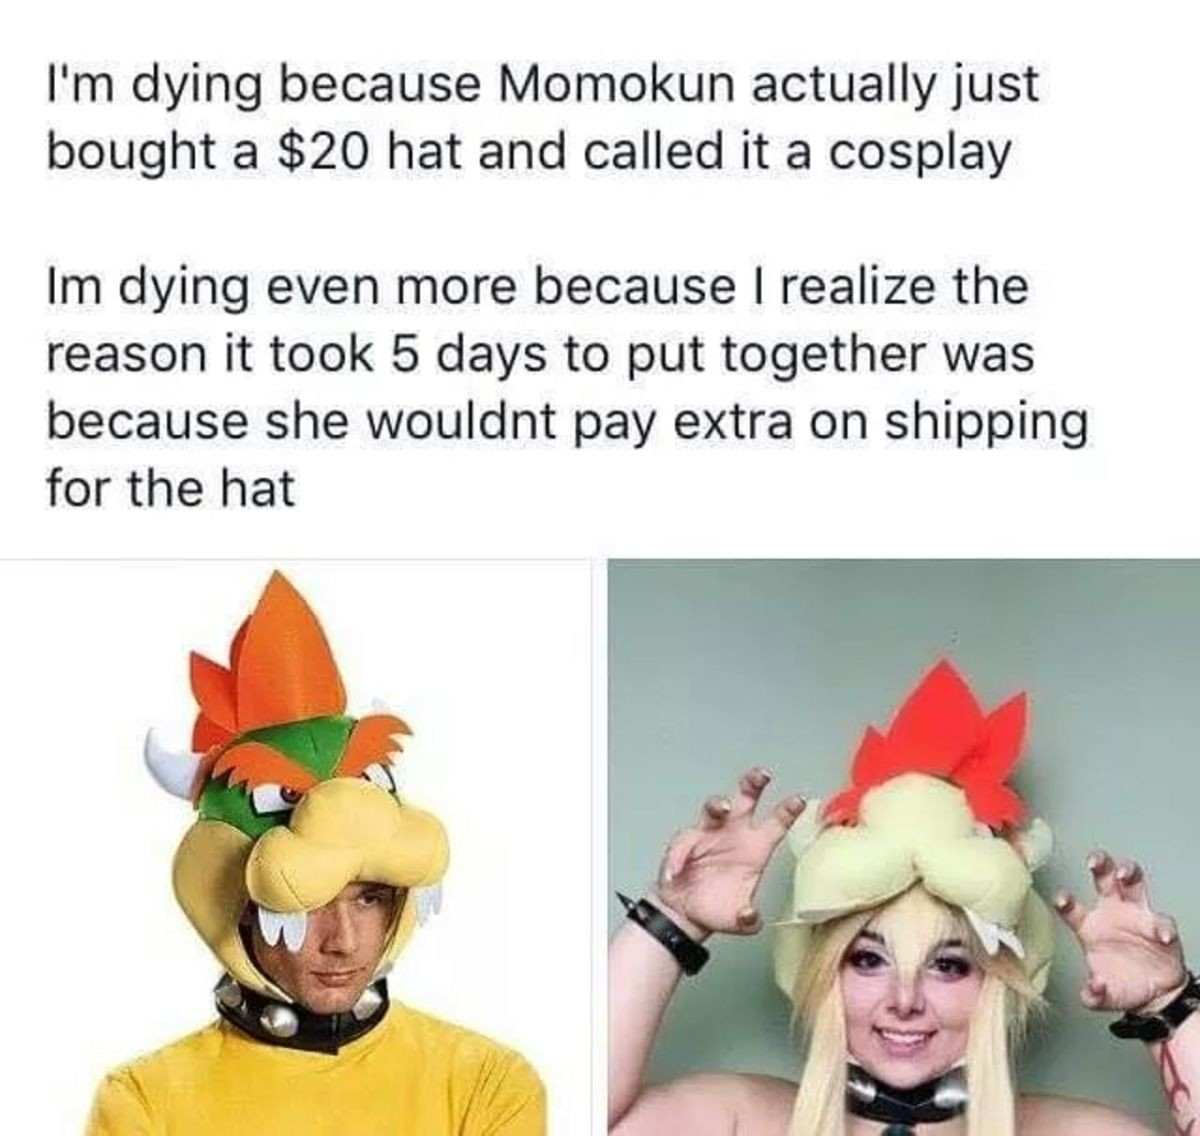 Not posting the full picture so you dont have to see the thot. .. For those who don't know: Momokun is one of the most hated Cosplayers in the cosplaying community, she is known for her sexist behavior towards other cosplayers